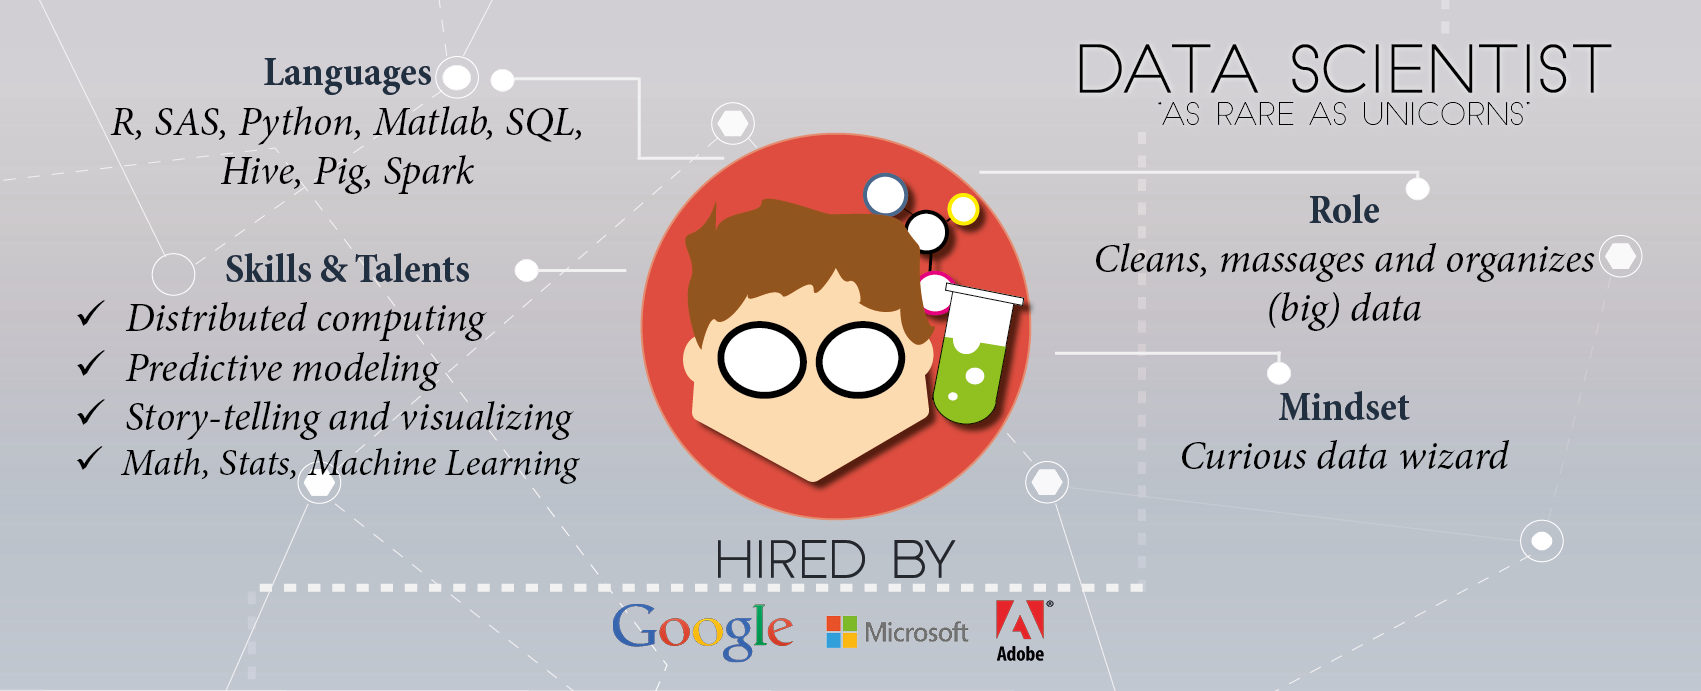 Profesi data scientist